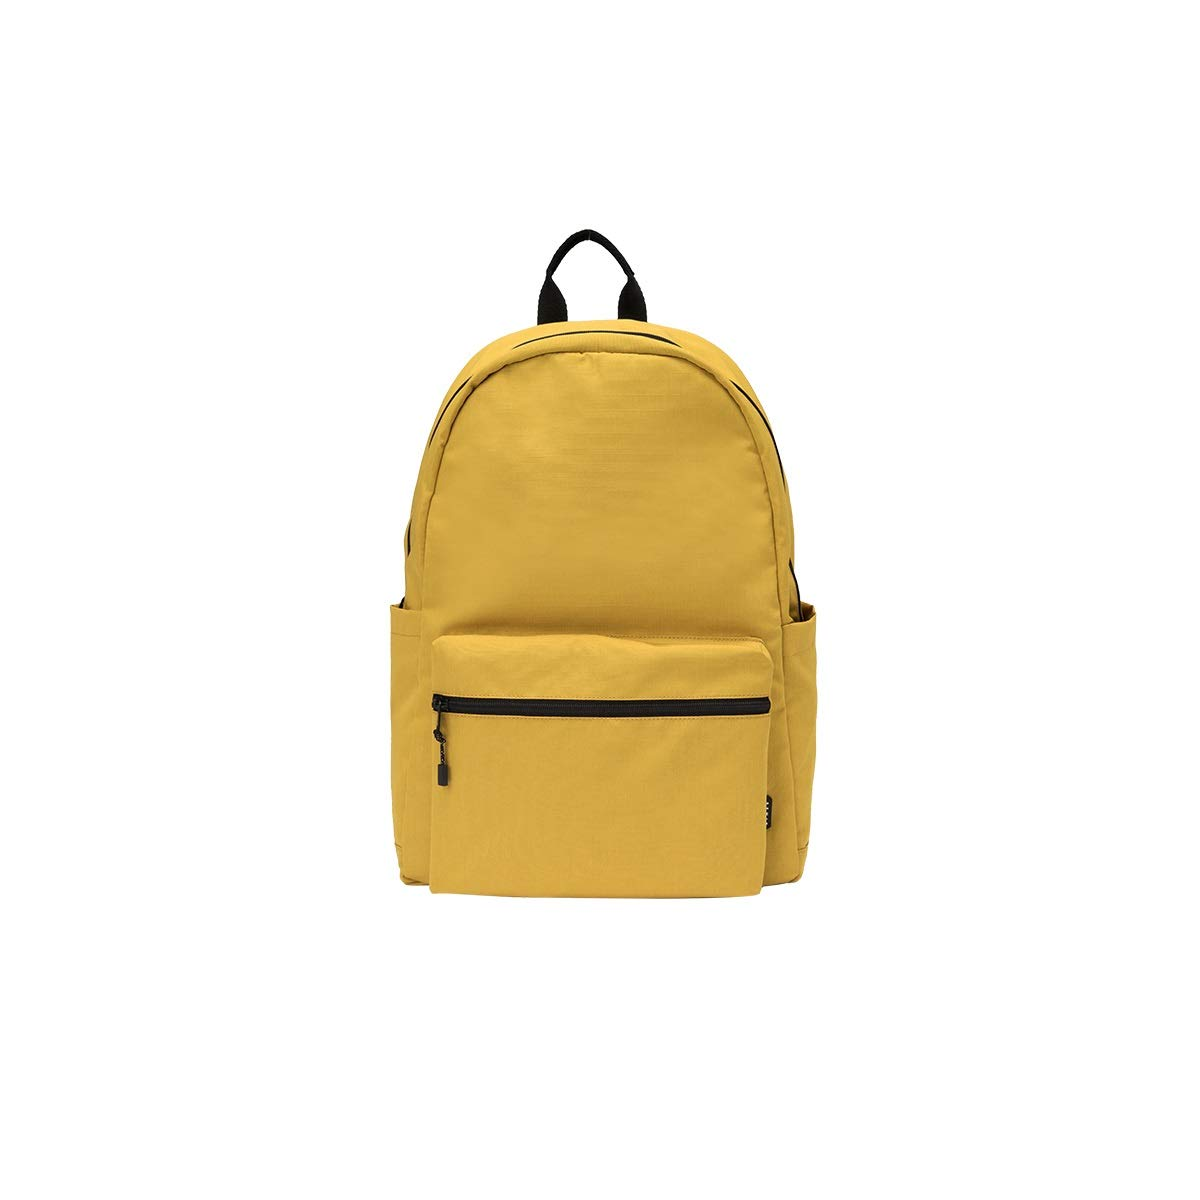 TONGBOSHI Backpack Male, Backpack Casual Simple Trend Travel Bag Female Large Capacity Computer Bag School Bag Male College Student (Color : Yellow)